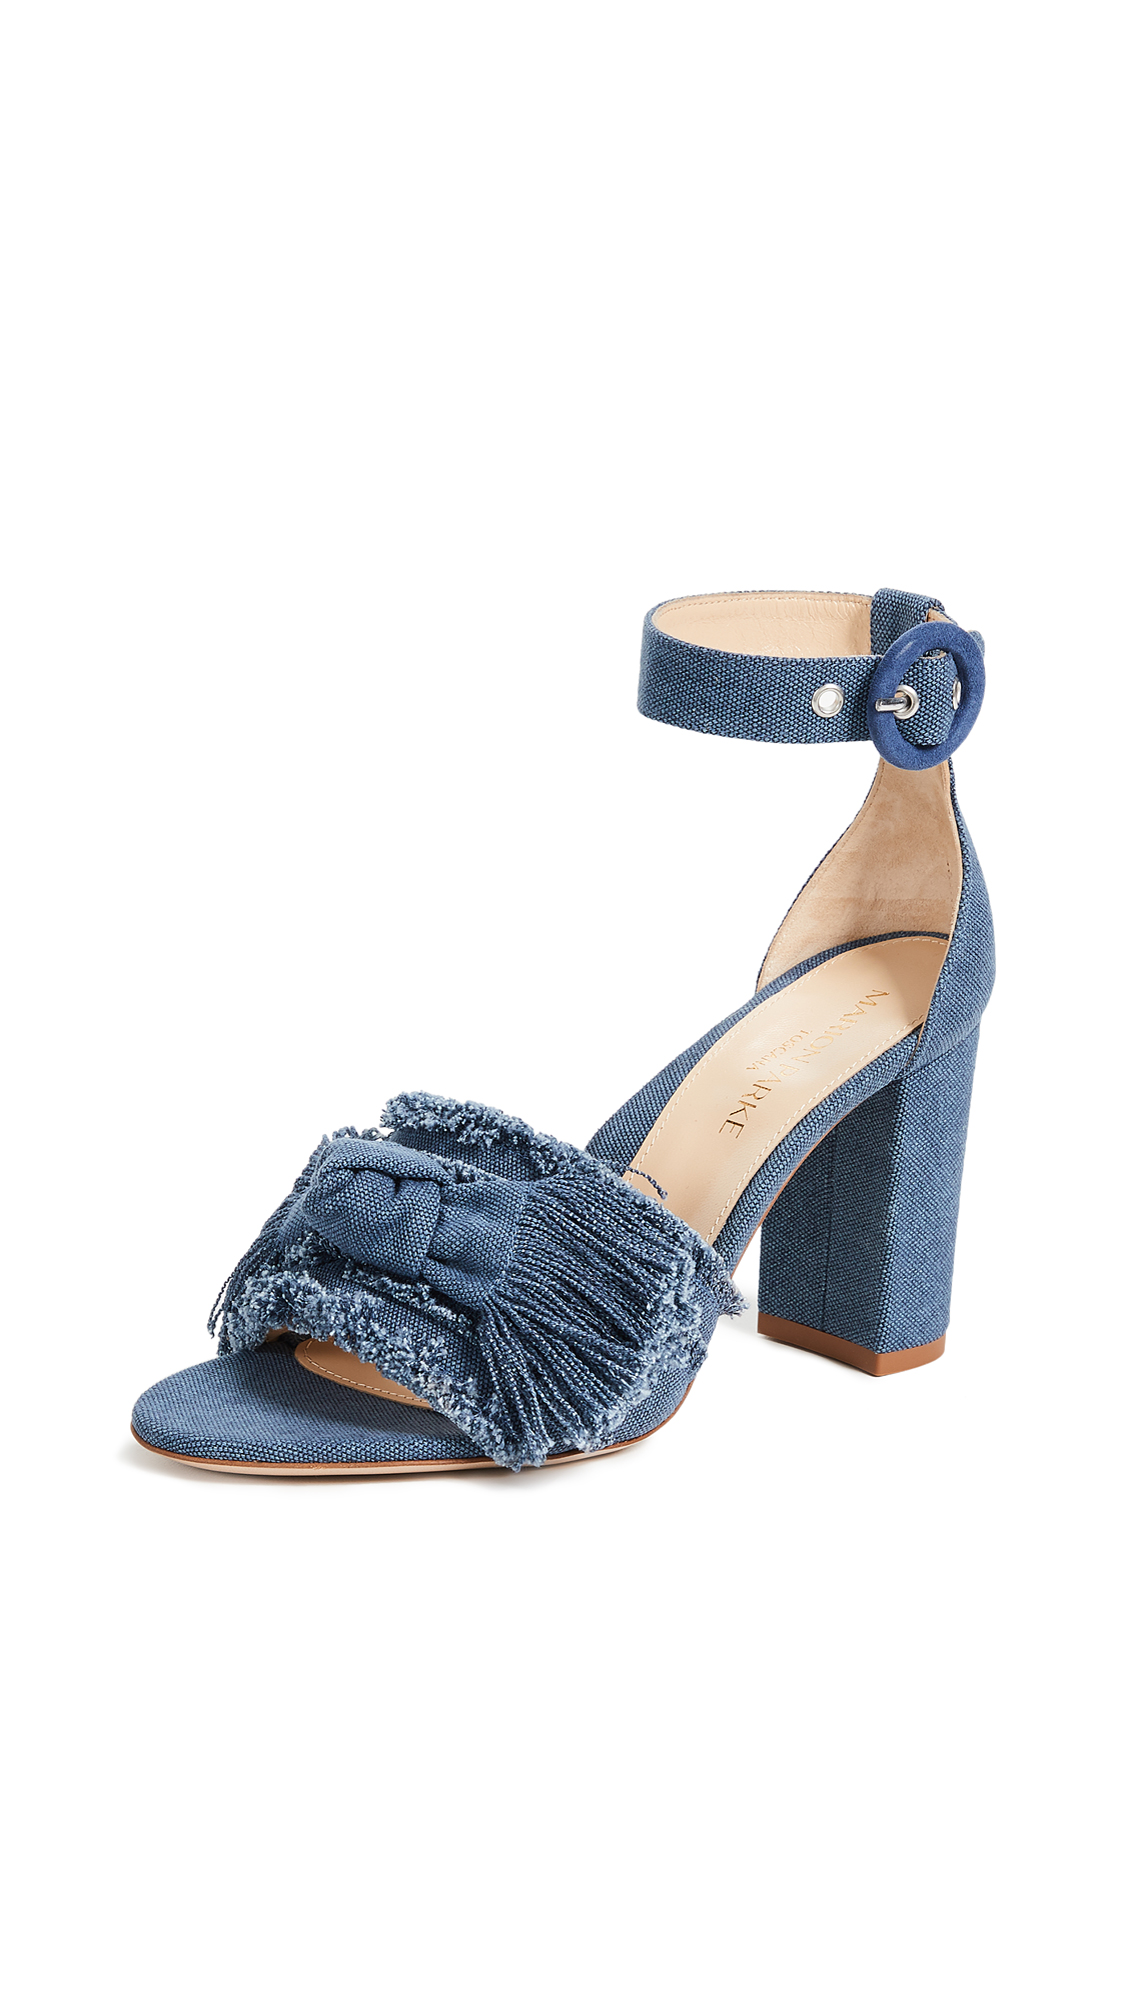 Marion Parke Larin Sandals - Blue Denim